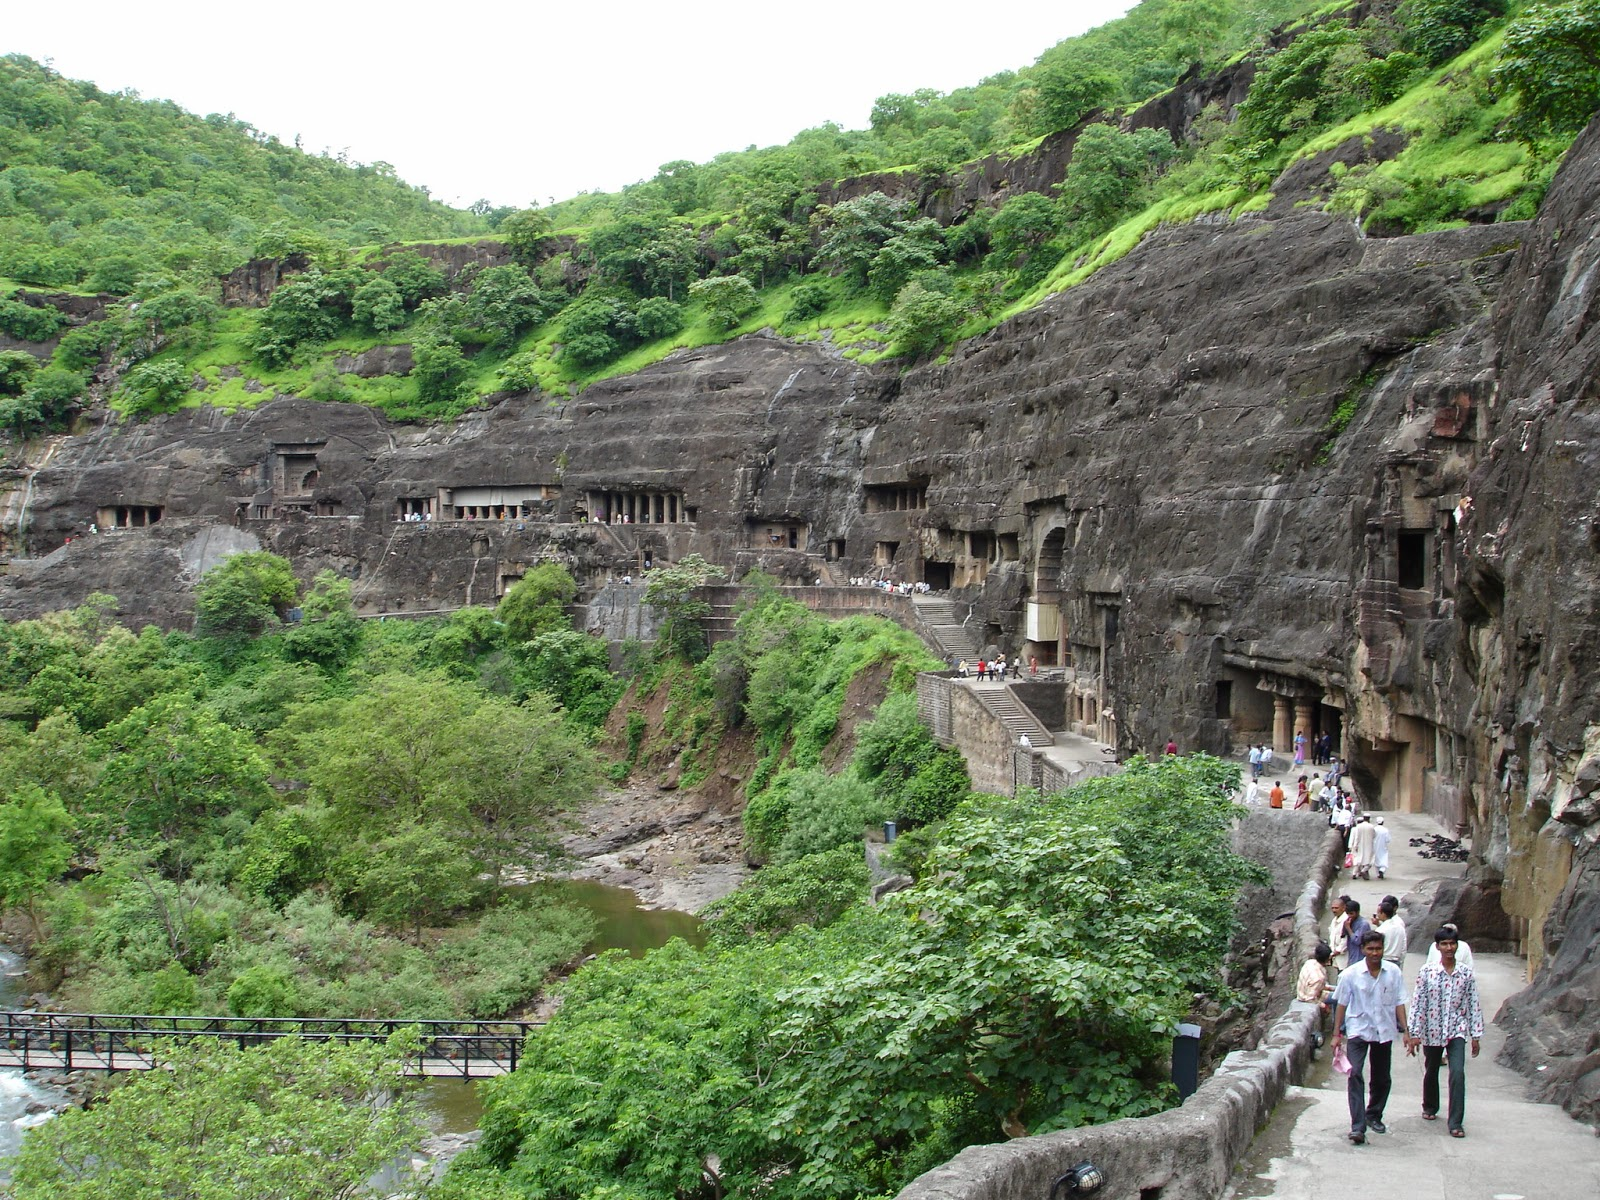 Ajanta caves - Ancient Buddhist Monestry - Maharashtra India